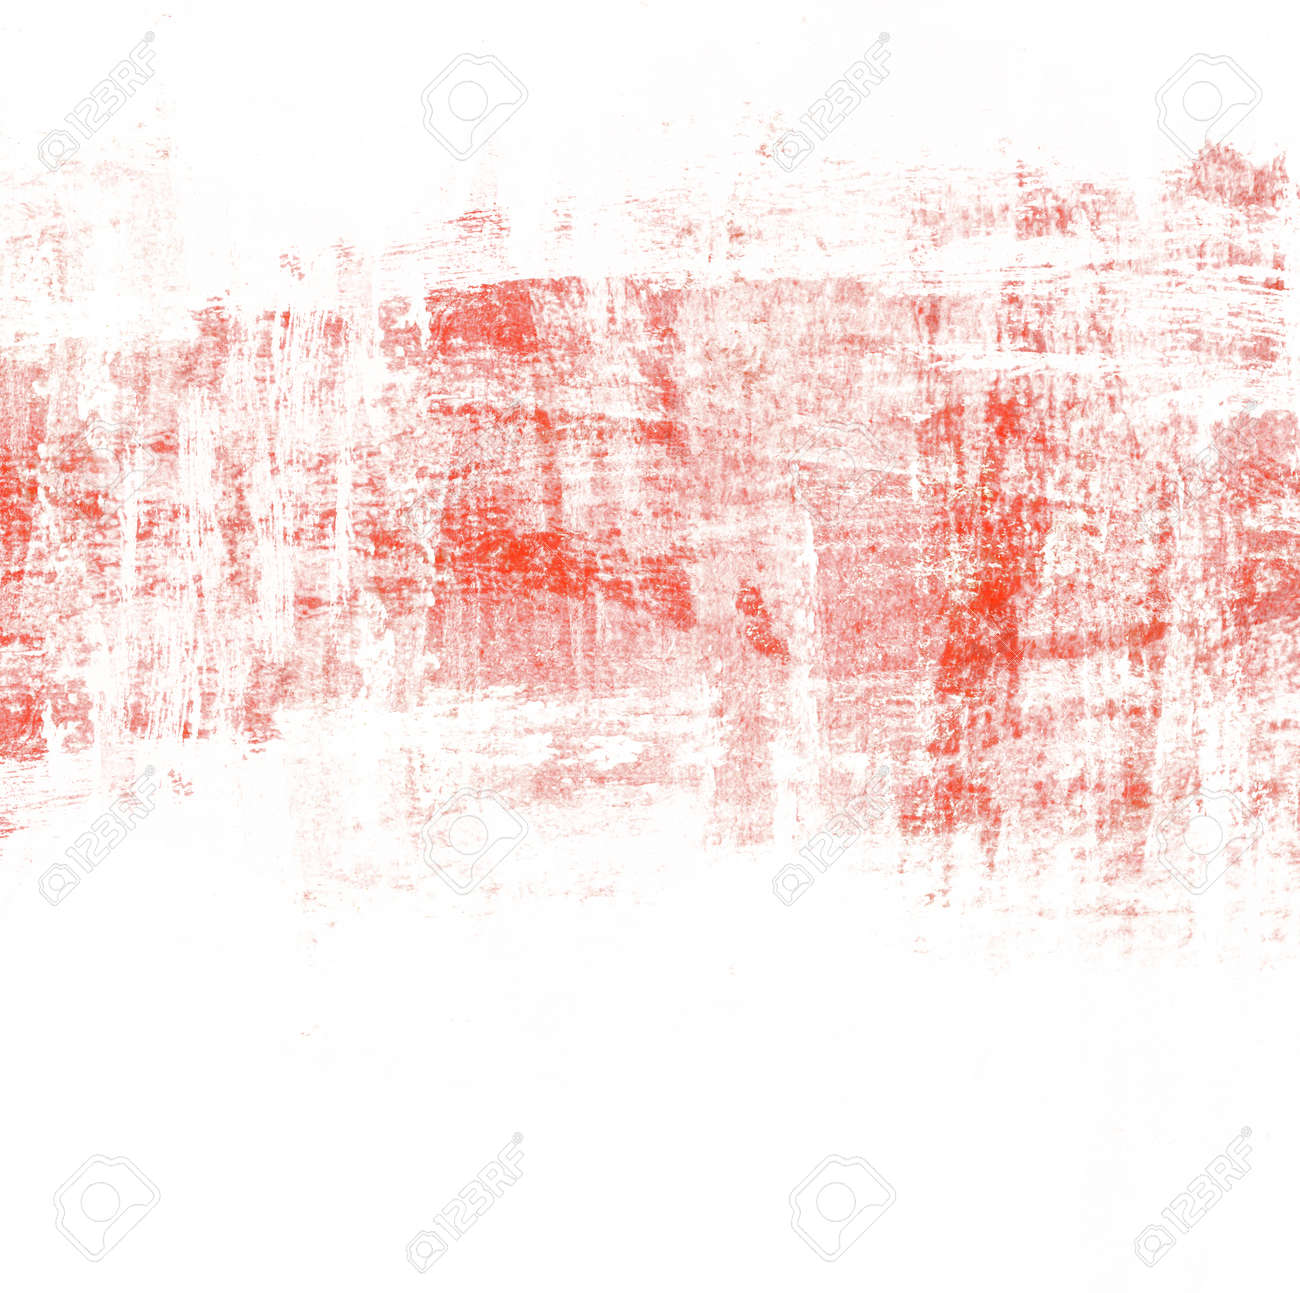 abstract red paint brush background with scratch texture